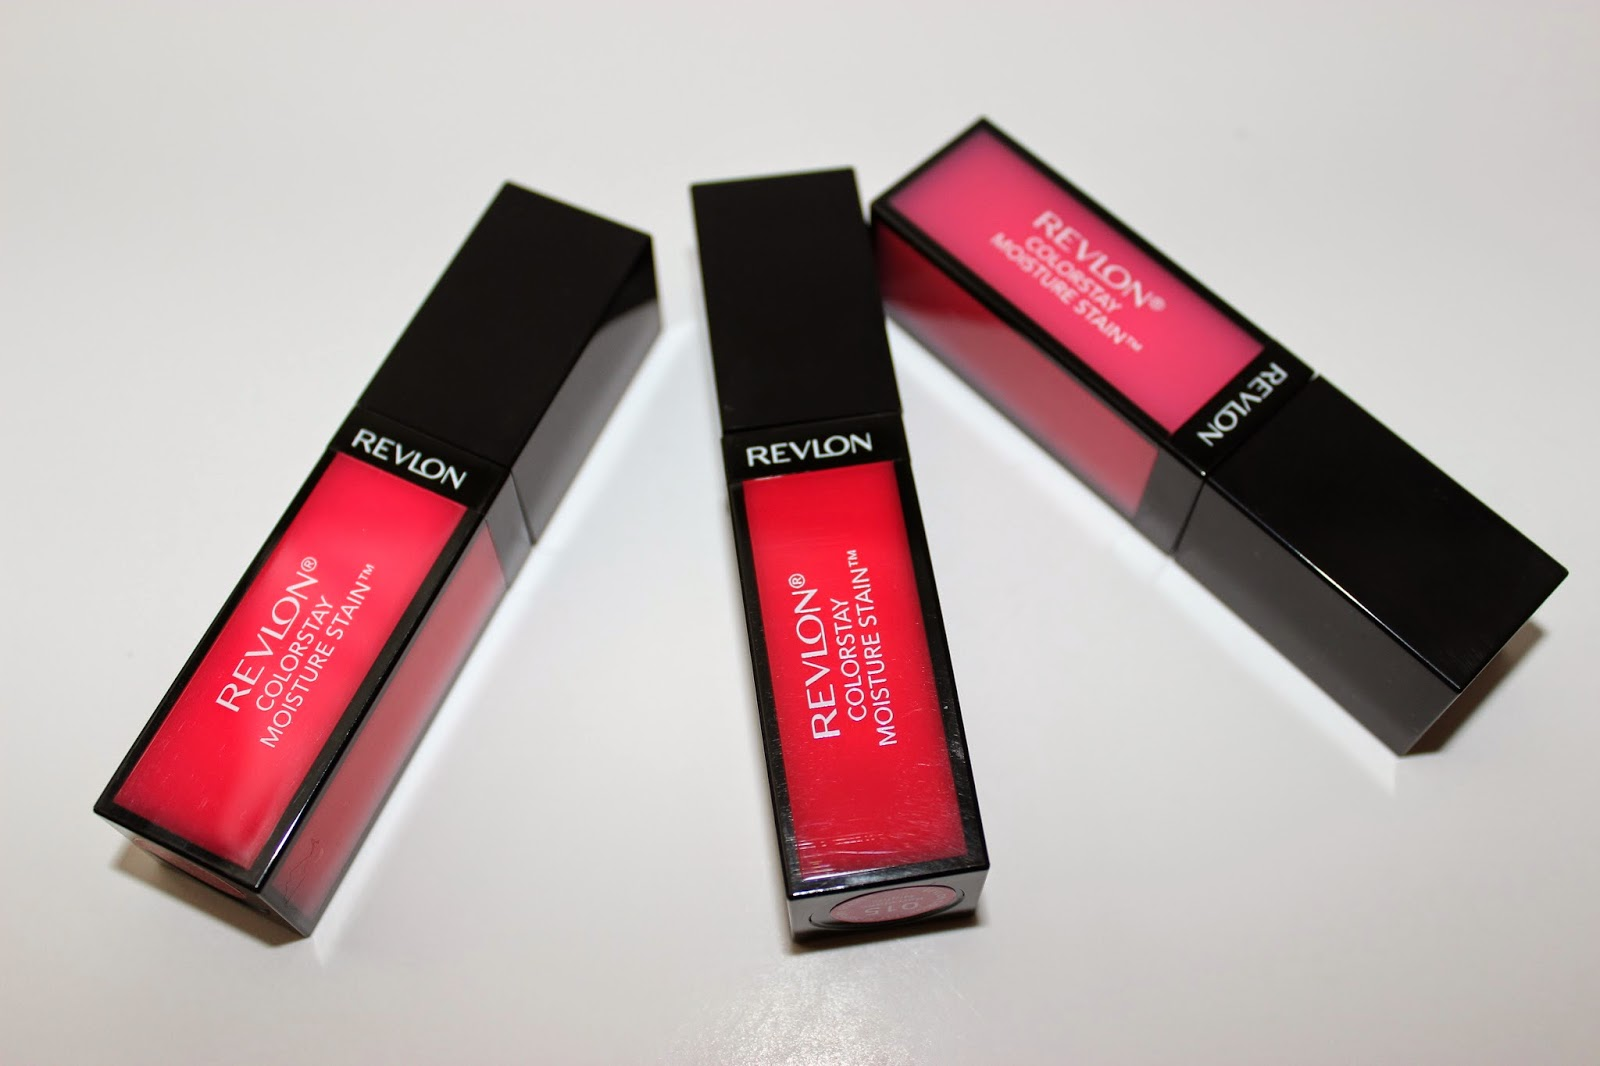 Revlon ColorStay Moisture Stain in Rio Rush, Barcelona Nights & LA Exclusive